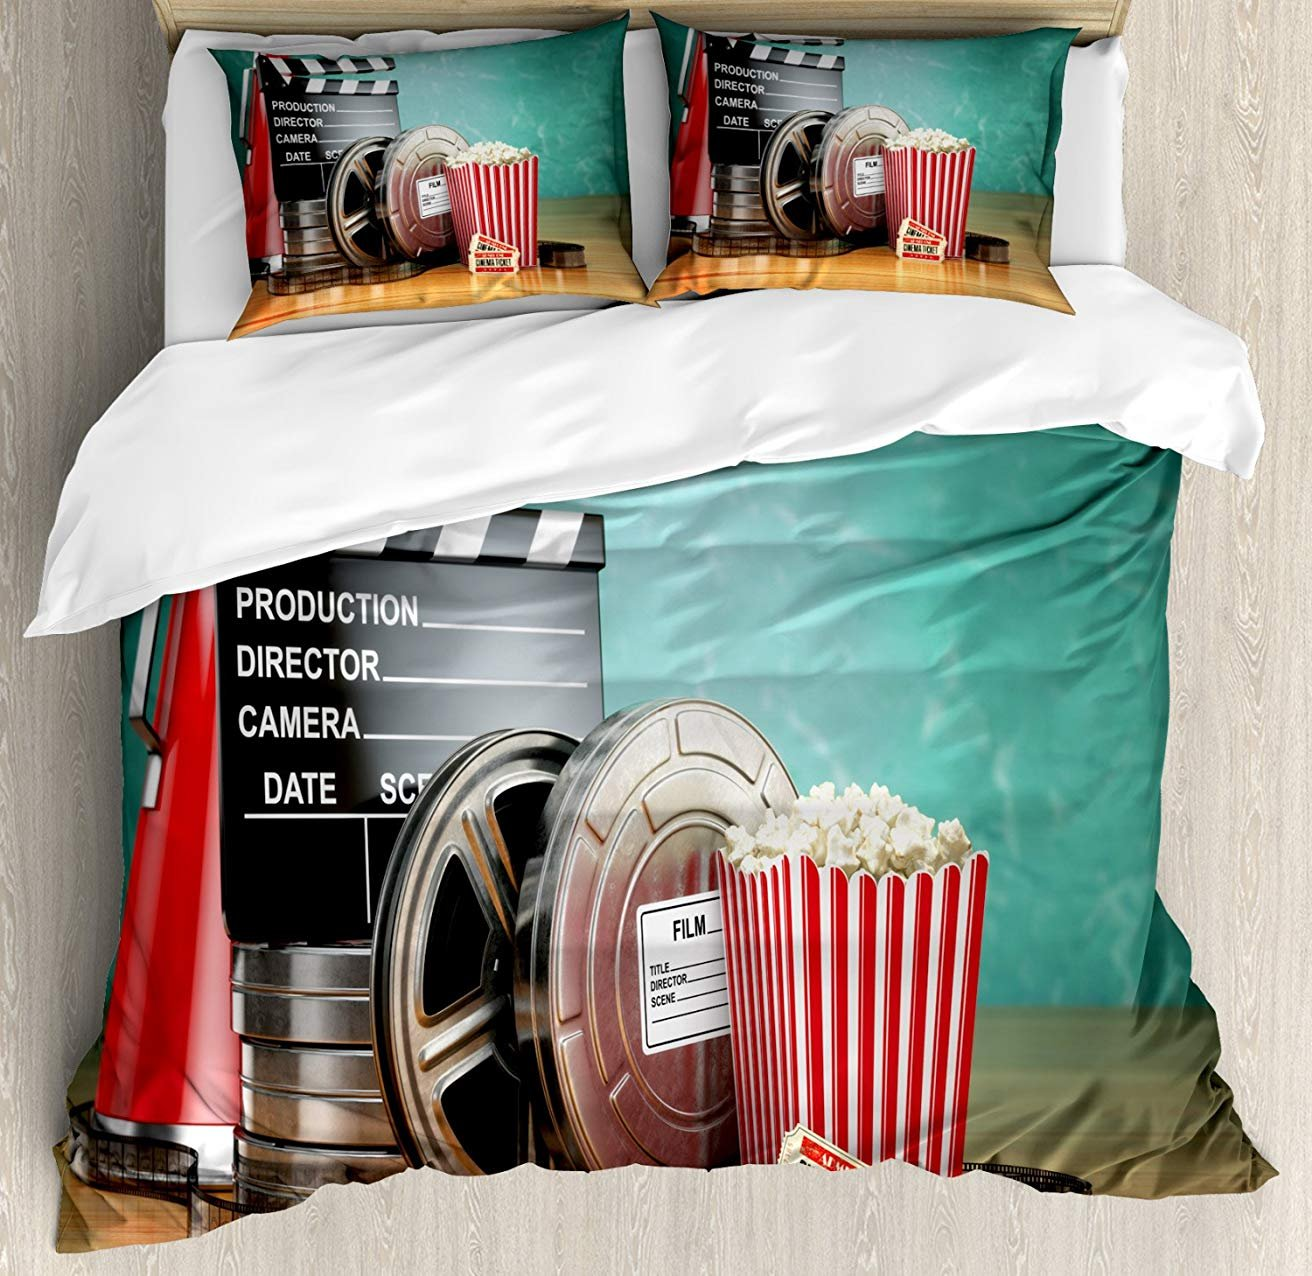 Movie Theater Bet Set 4pcs Bedding Sets Duvet Cover Flat Sheet with Decorative Pillow Cases Twin Size for Kids Adults Teens-Production Theme 3D Film Reels Clapperboard Tickets Popcorn and Megaphone by LAMANDA